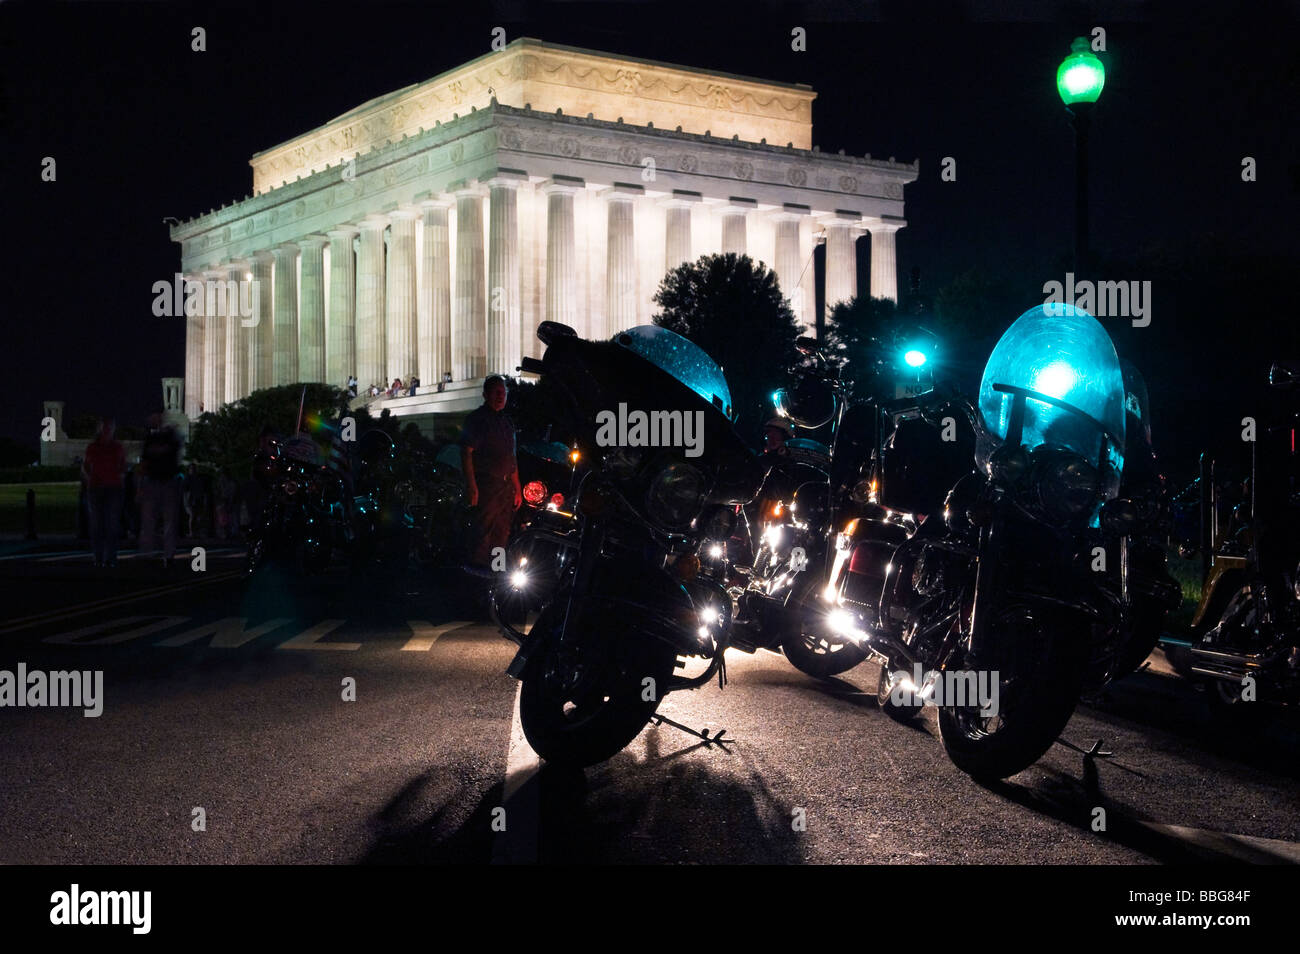 Motorcycles silhouetted in front of the Lincoln Memorial in Washington DC. - Stock Image